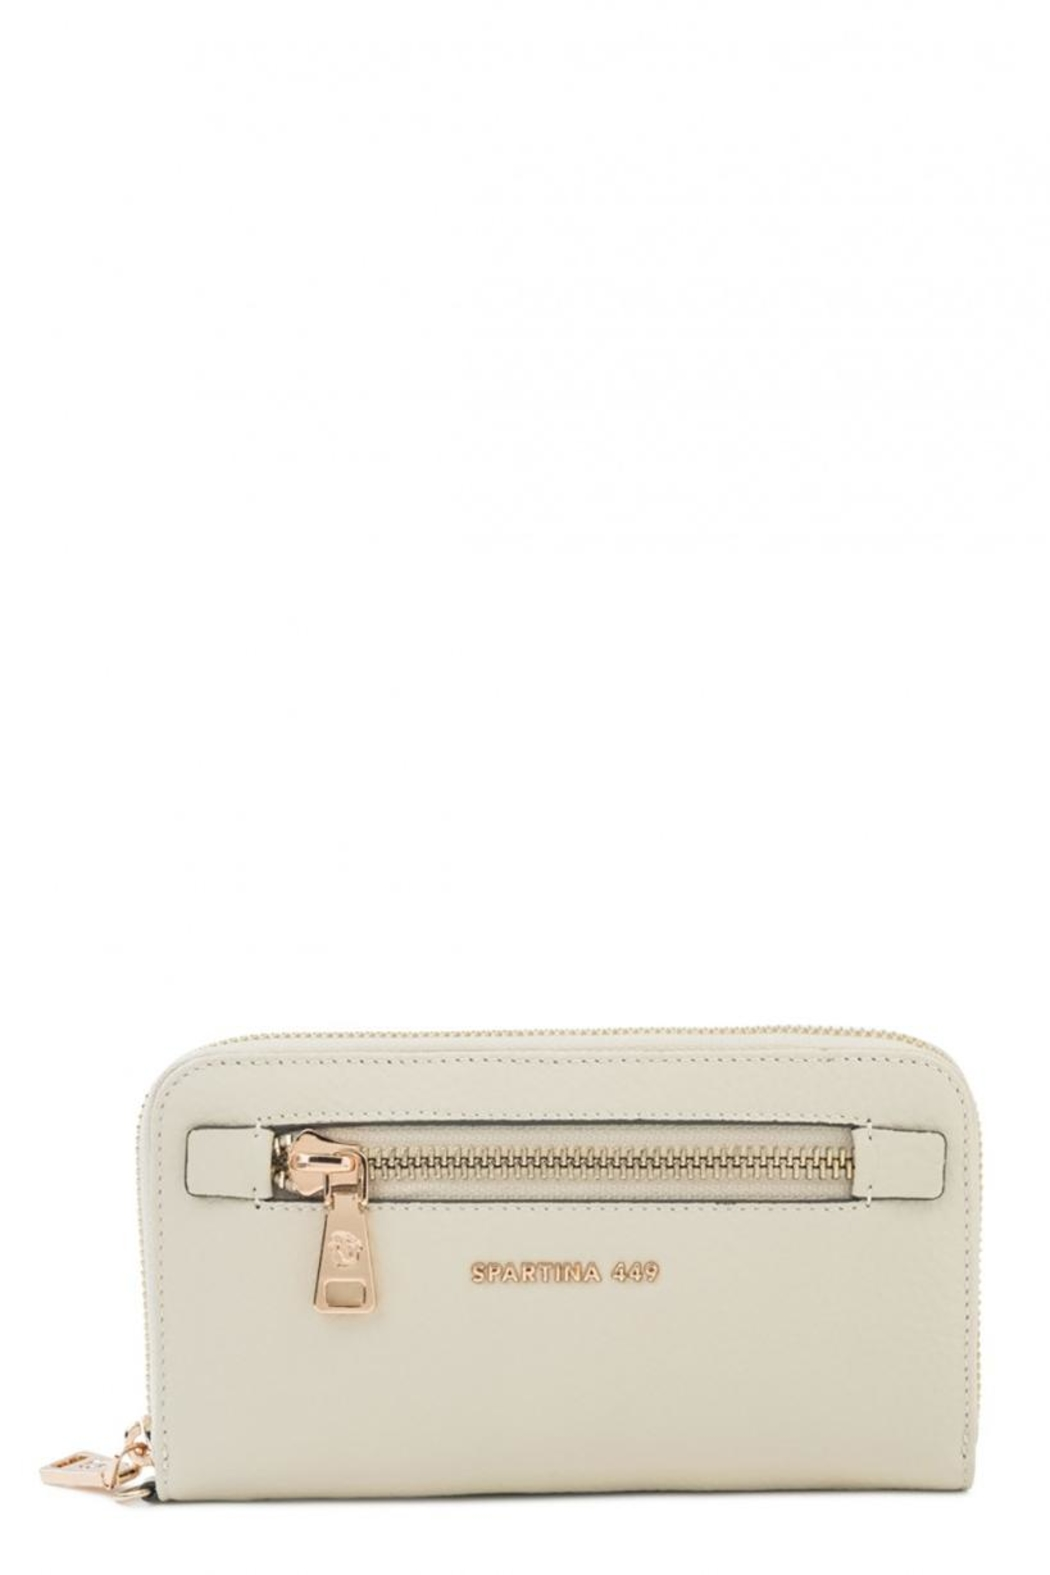 Spartina 449 Siren 449 Wallet - Main Image